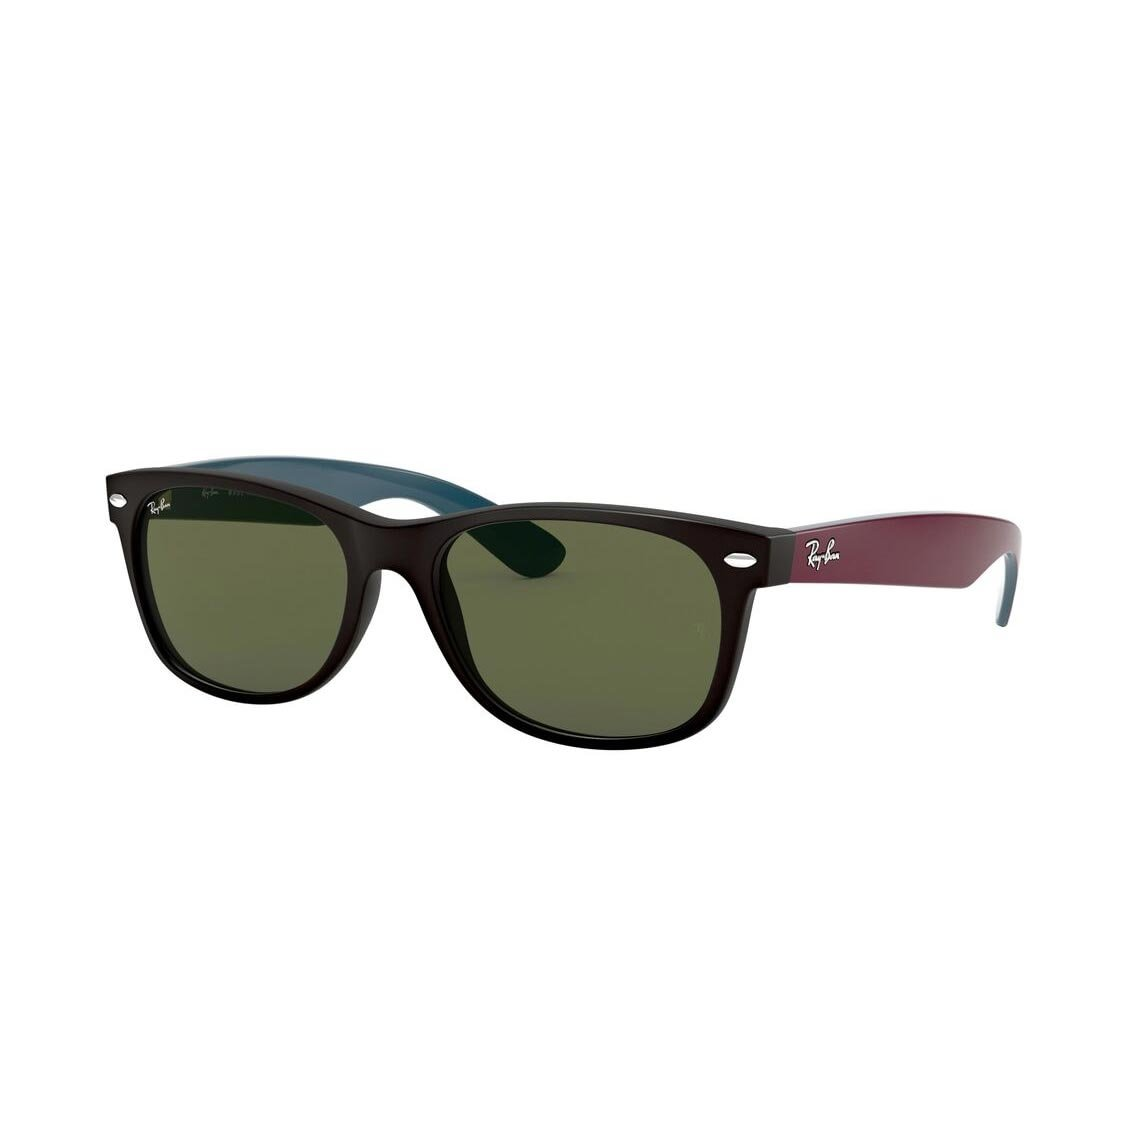 Ray-Ban New Wayfarer RB2132 6182 55